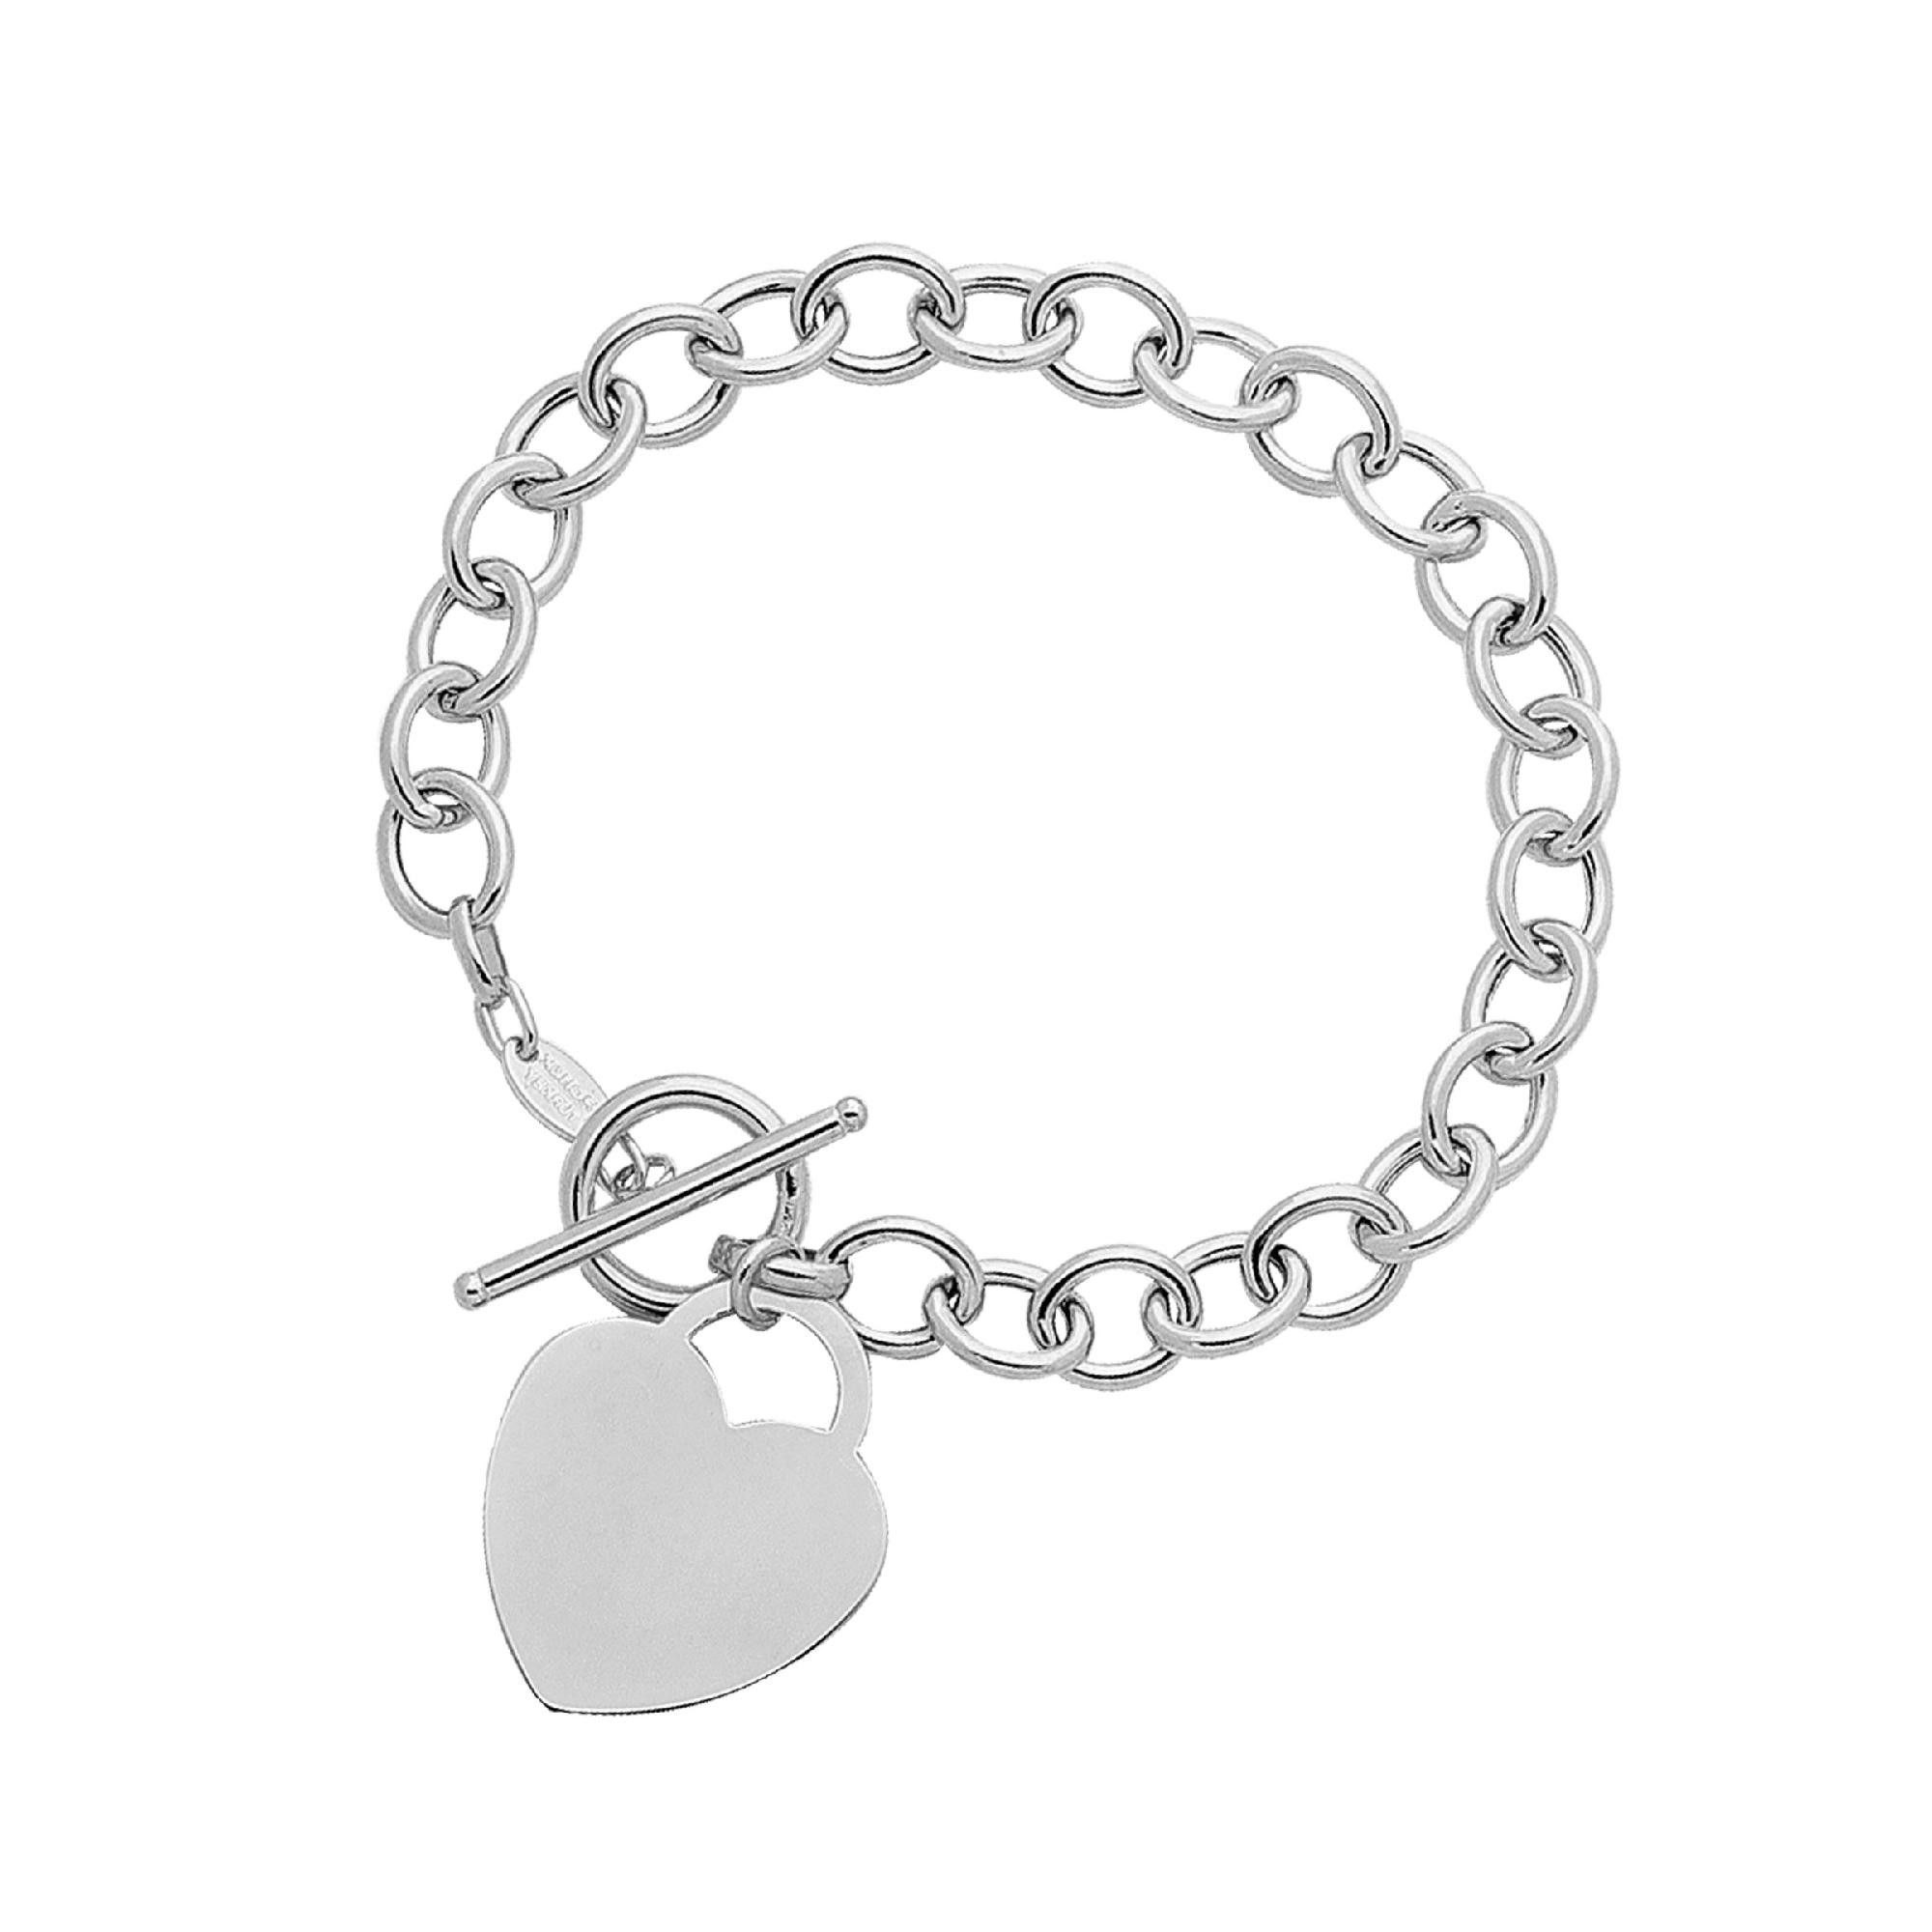 Toggle bracelet with heart charm in k white gold jewelry